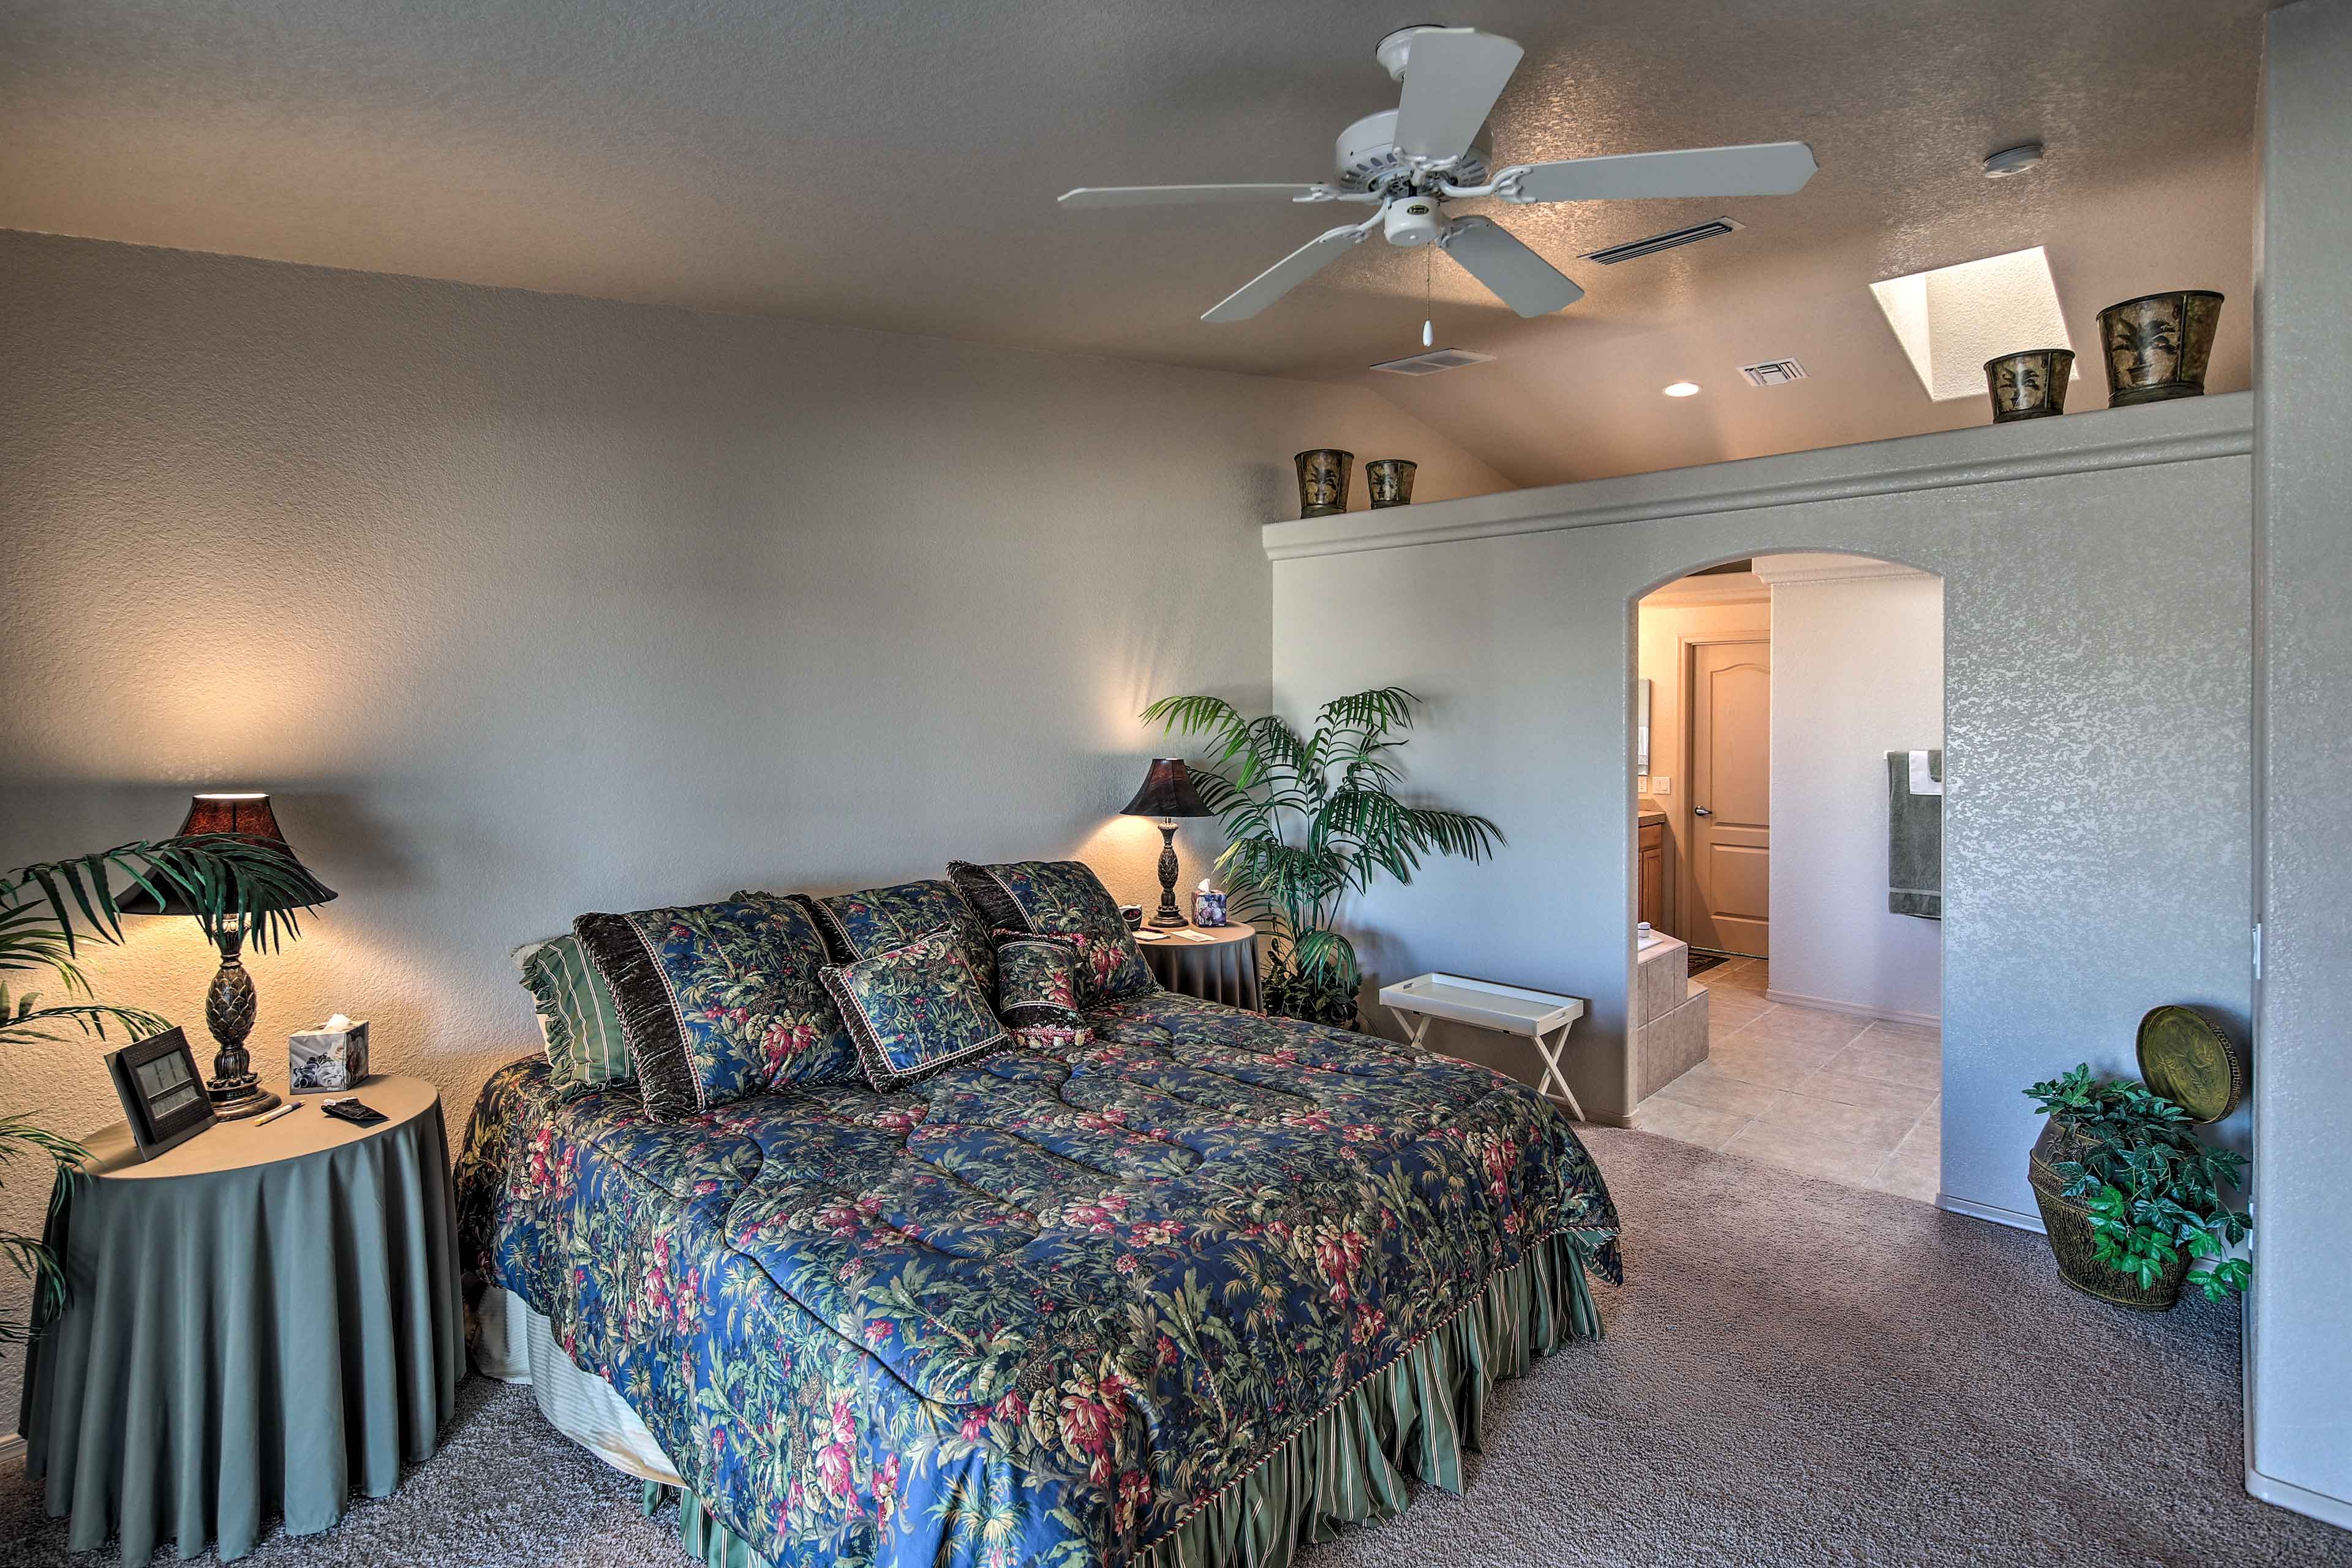 Enjoy a restful night in the master bedroom.